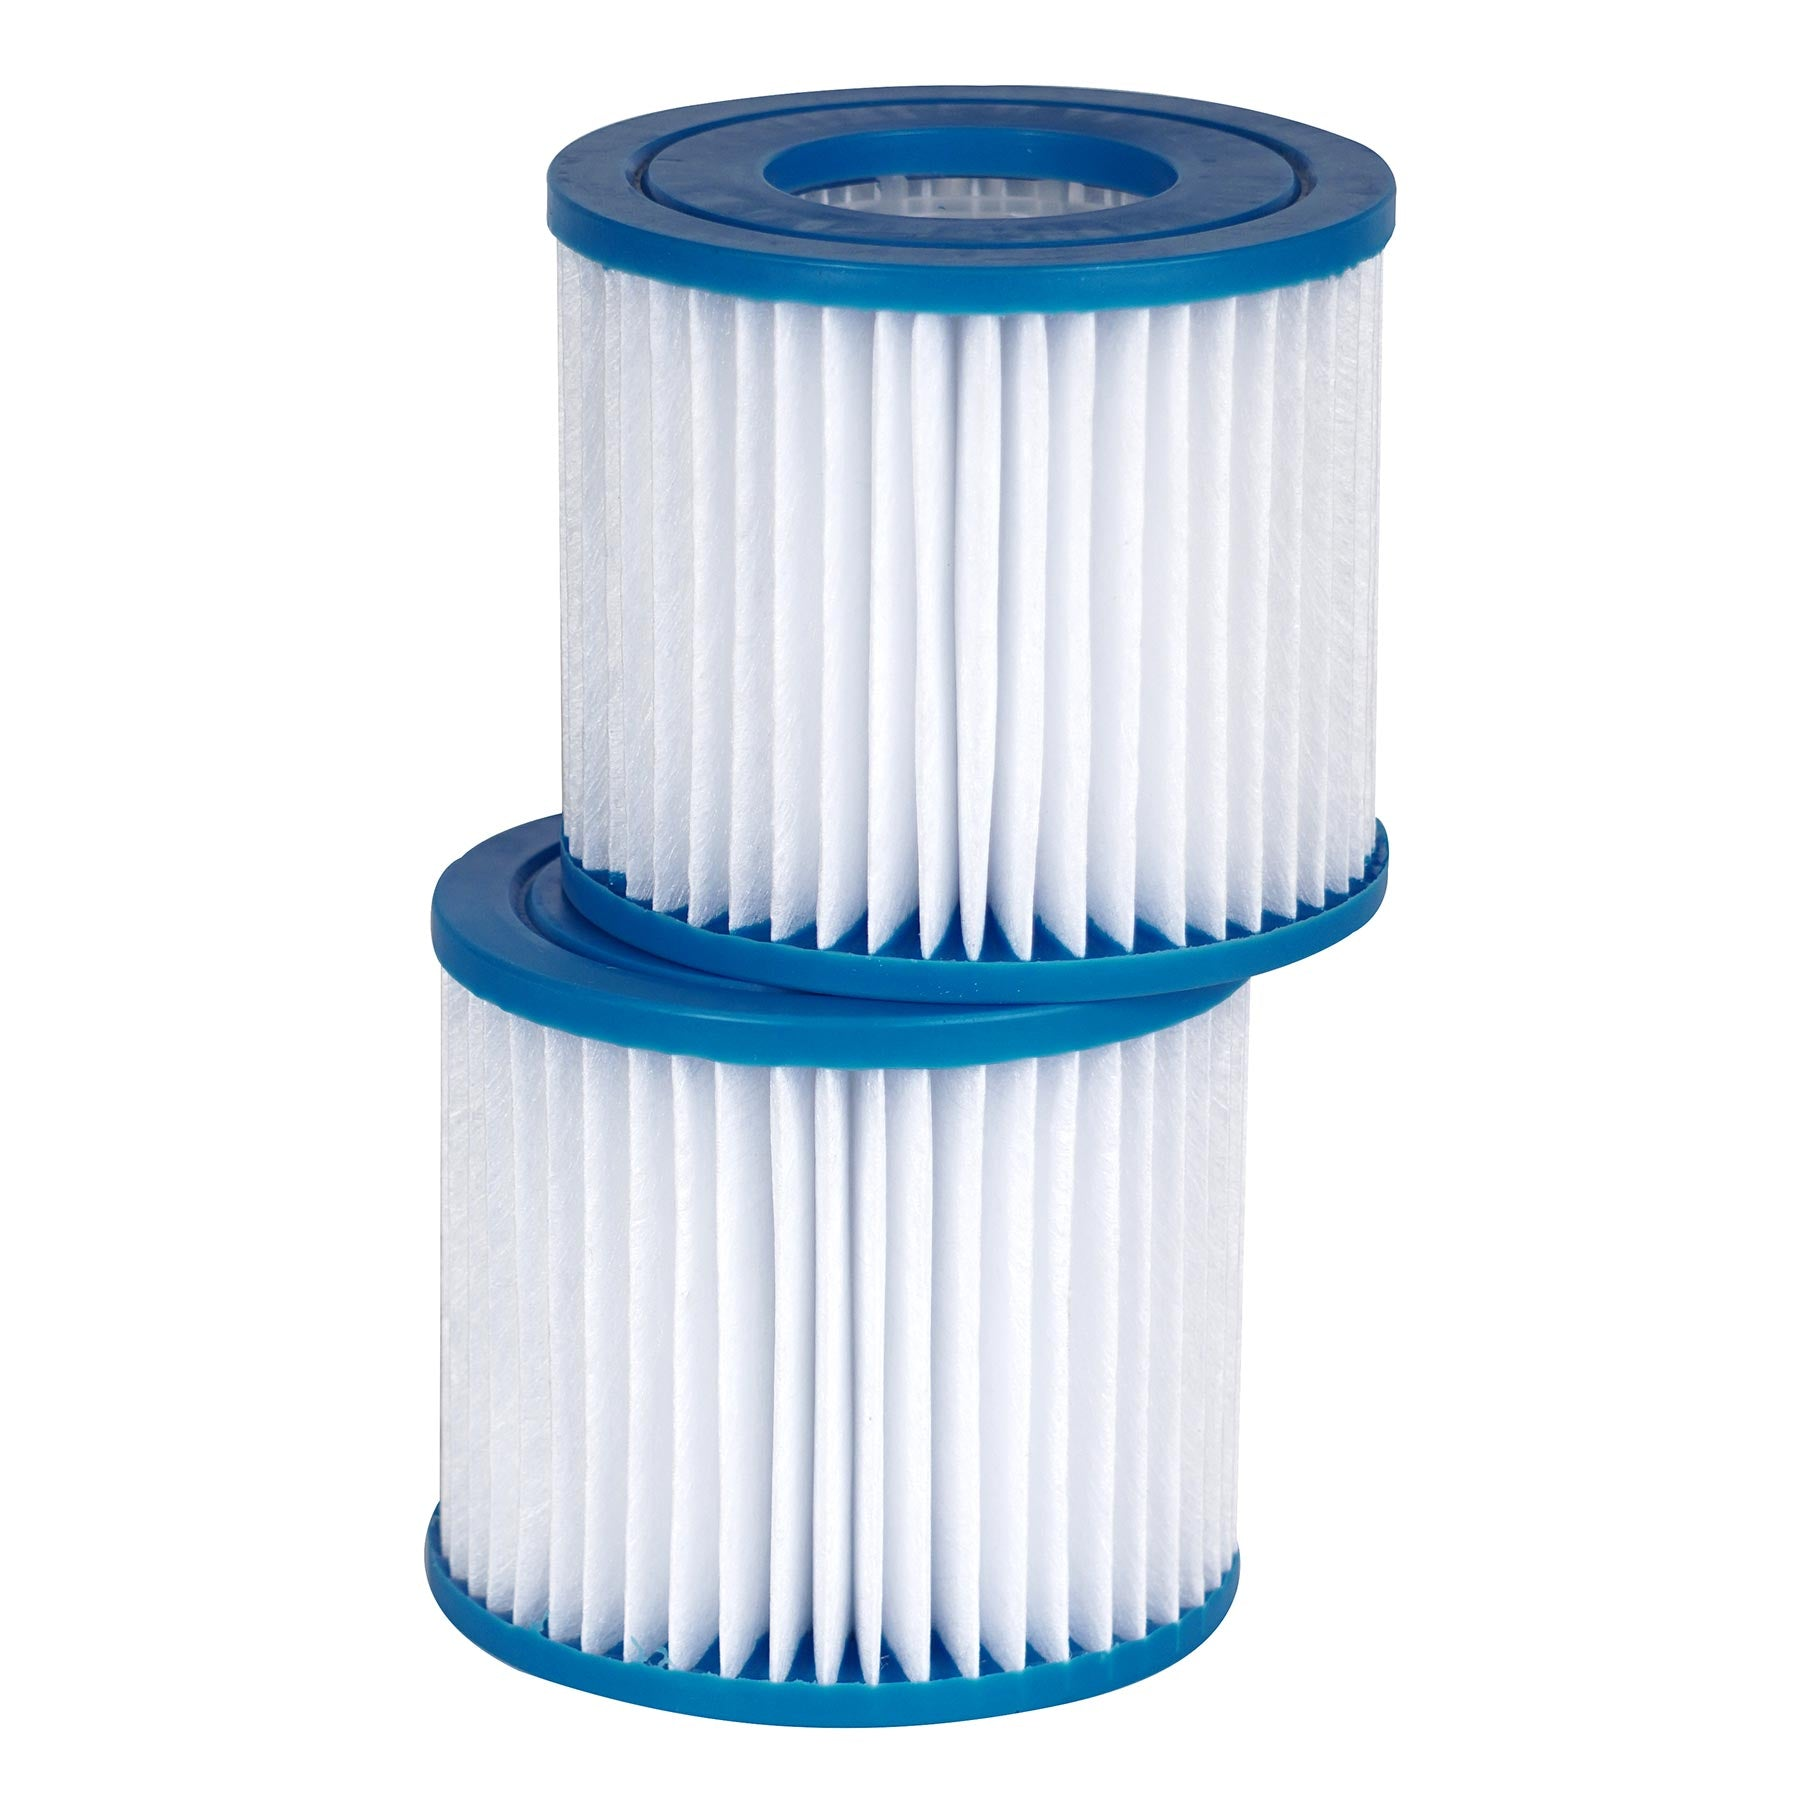 Replaces Unicel C-4313, Pleatco PBW4Pair - Twin Pack Pool, Hot Tub & Spa Filter Cartridges-Filter Cartridge-FilterDeal.com